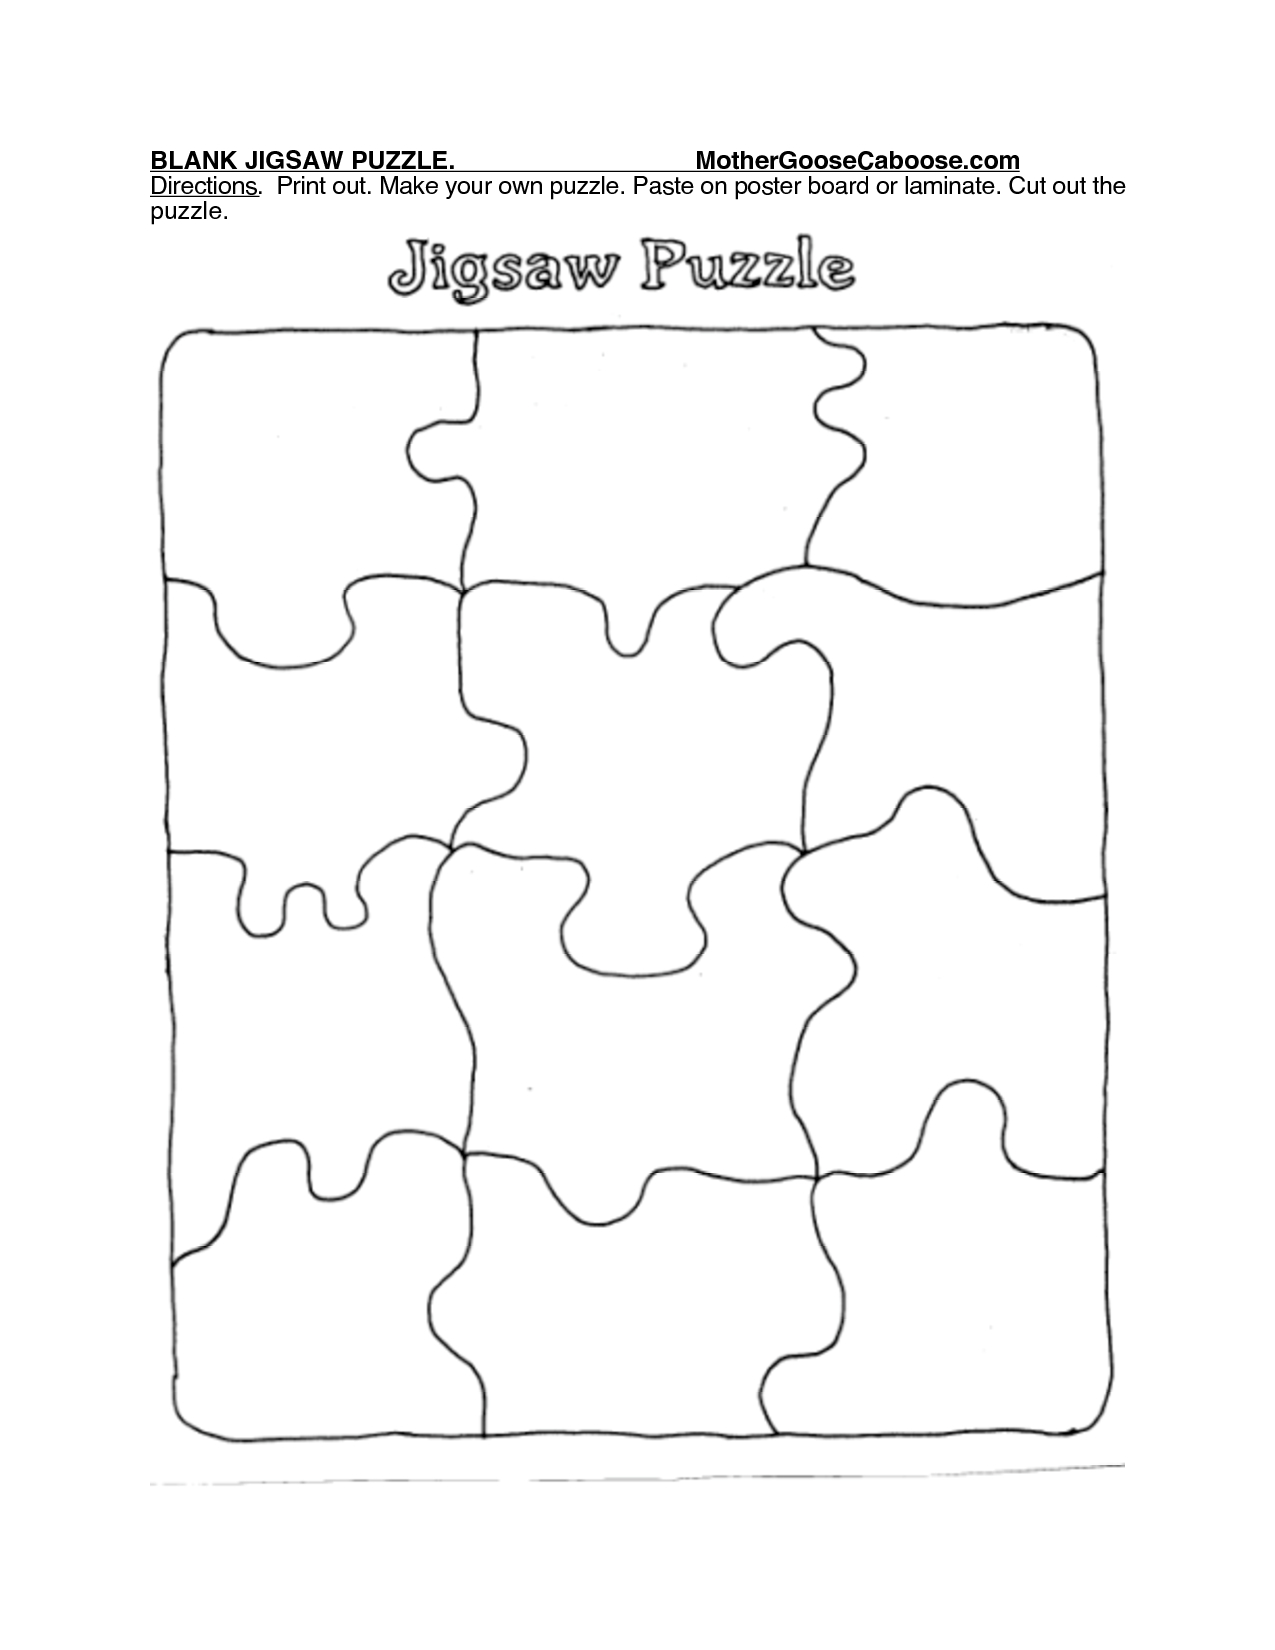 Printable Puzzle Piece Template | Search Results | New Calendar - Printable Jigsaw Puzzle For Adults